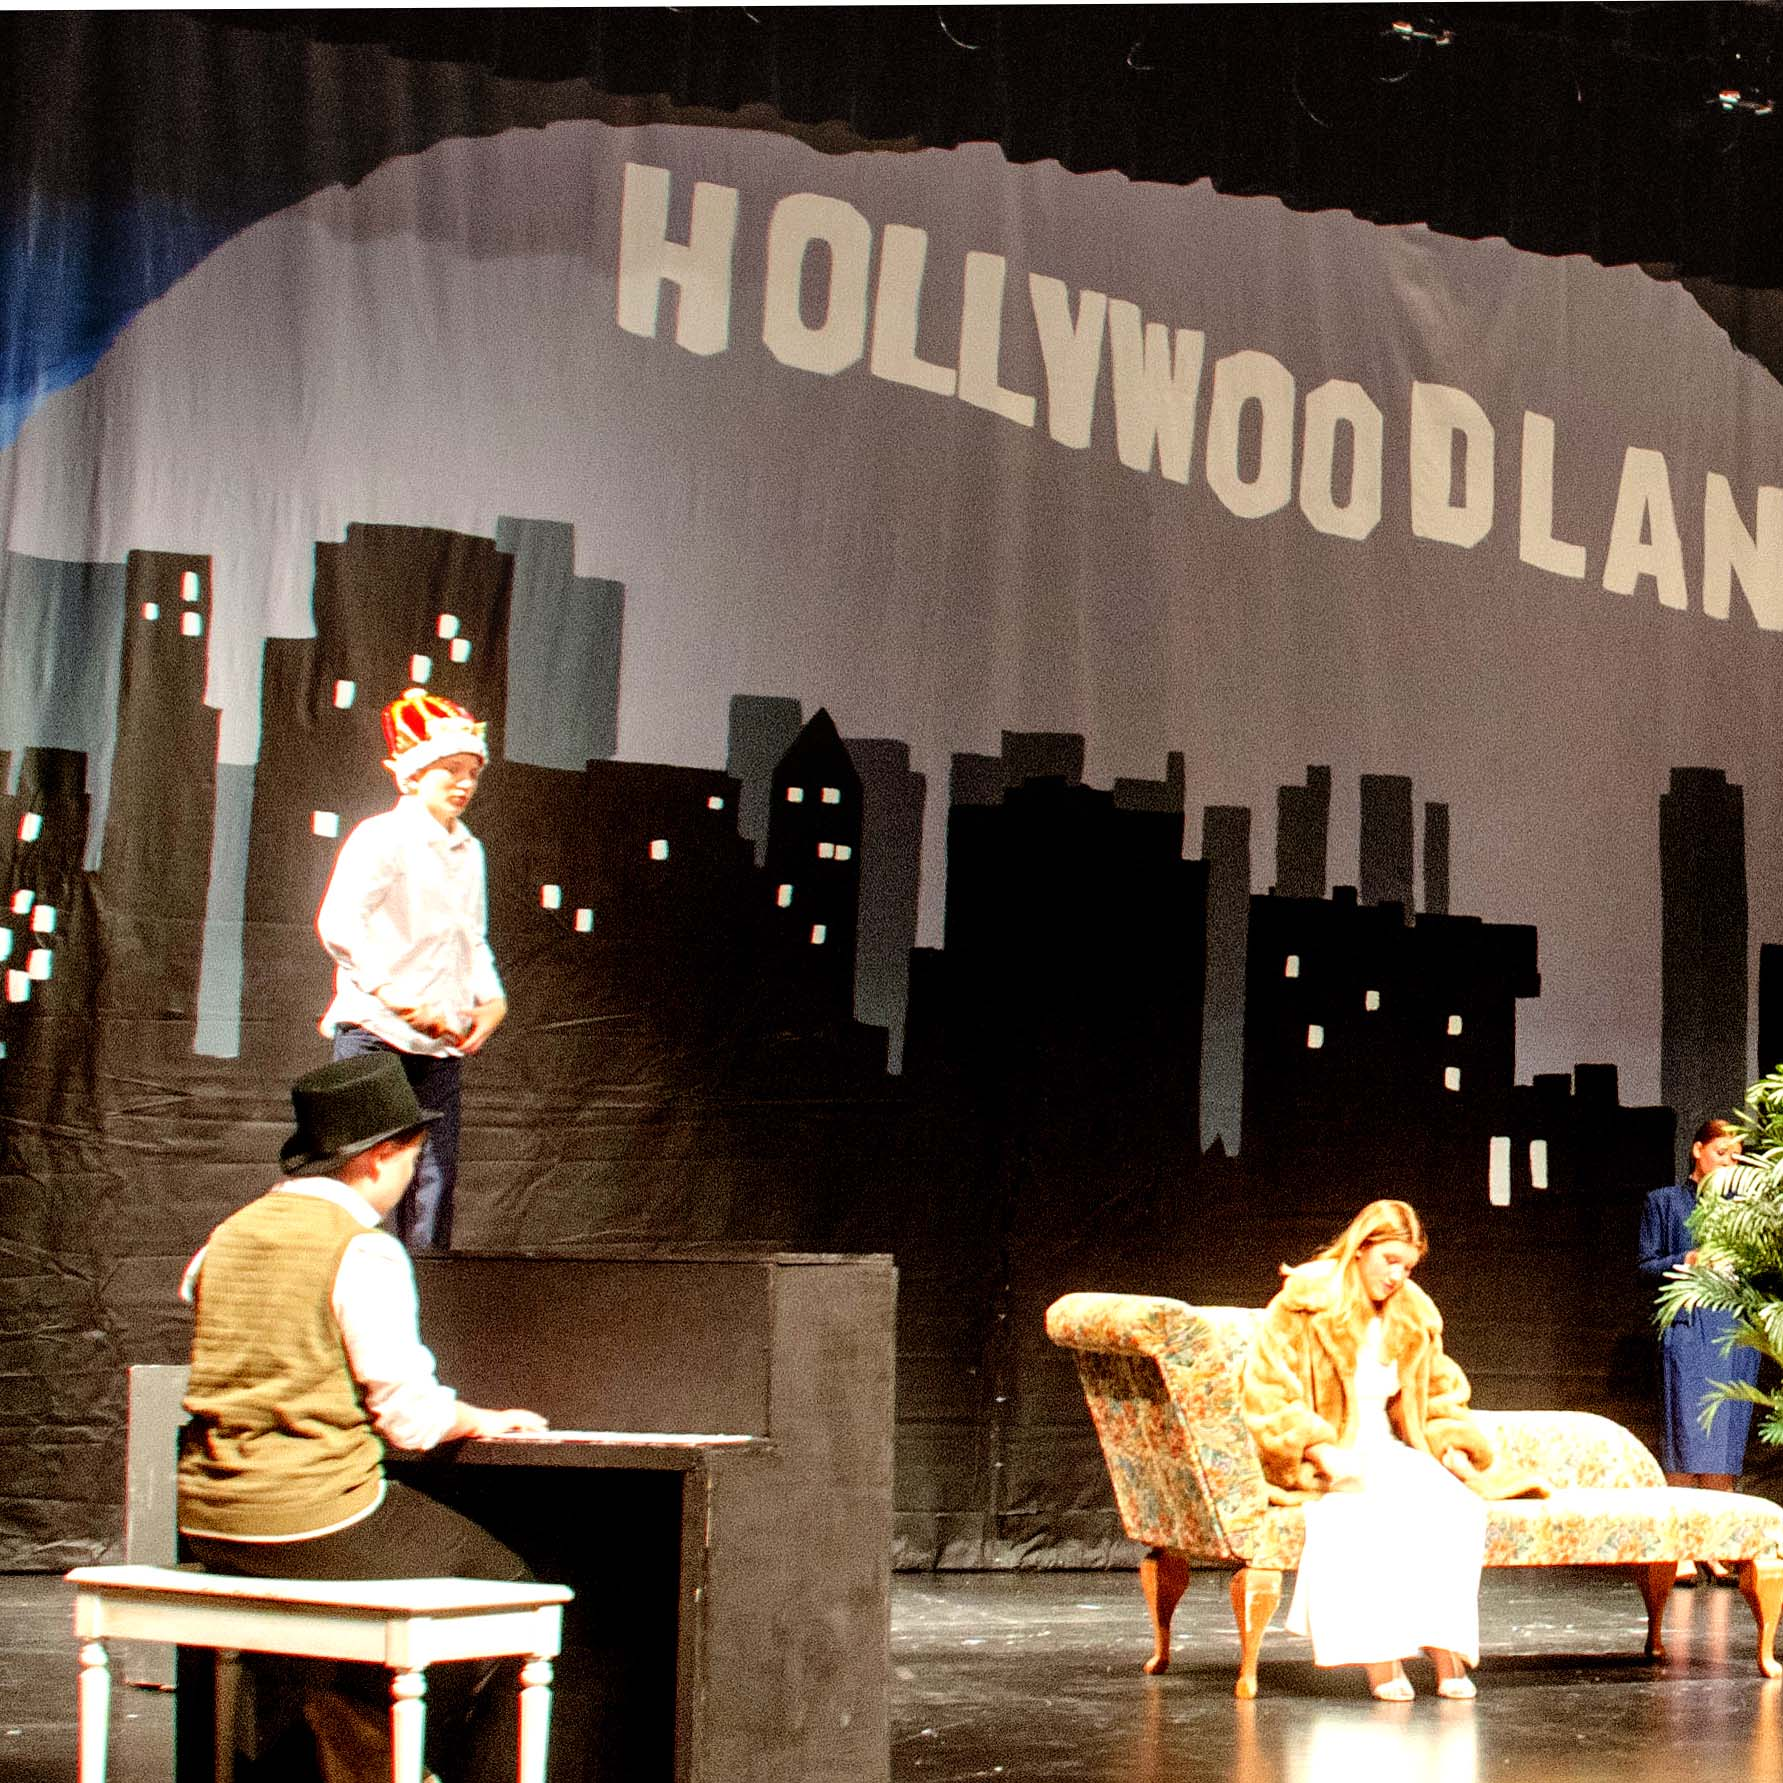 Flint Hills Market and Bakery employee Sandy Harper tallies the grocery bill for Florence Mayor Bob Gayle on Saturday. The new store in the renovated opera house downtown drew a big crowd on its opening day, and owner Jenny Lee said all of the baked goods sold out.